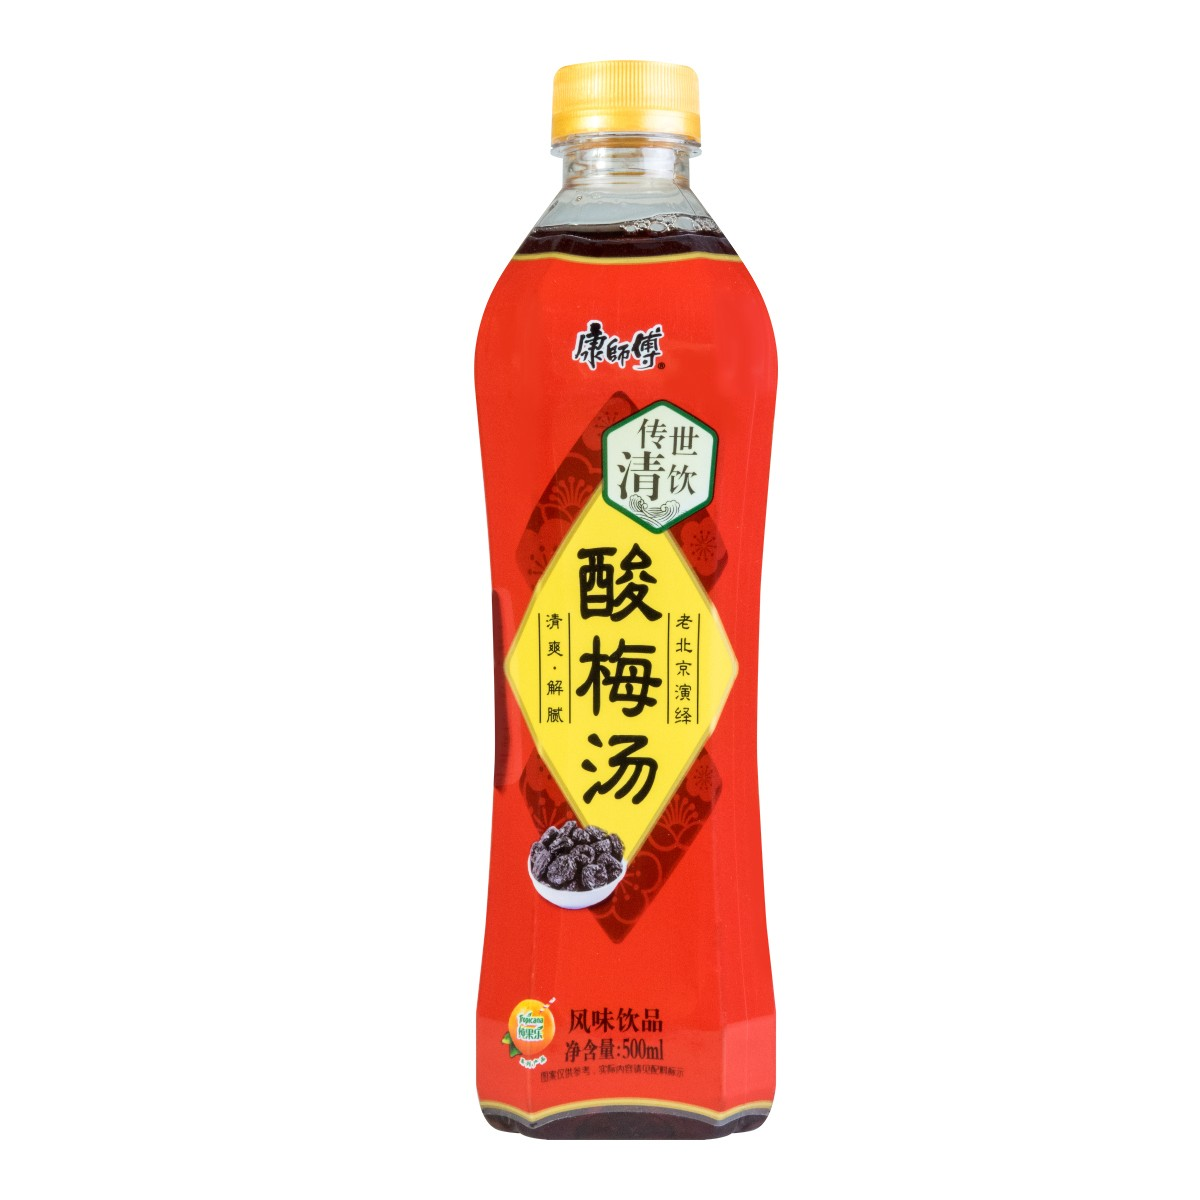 Yamibuy.com:Customer reviews:MASTER KONG Tangerine Peel&Plum Drink 500ml